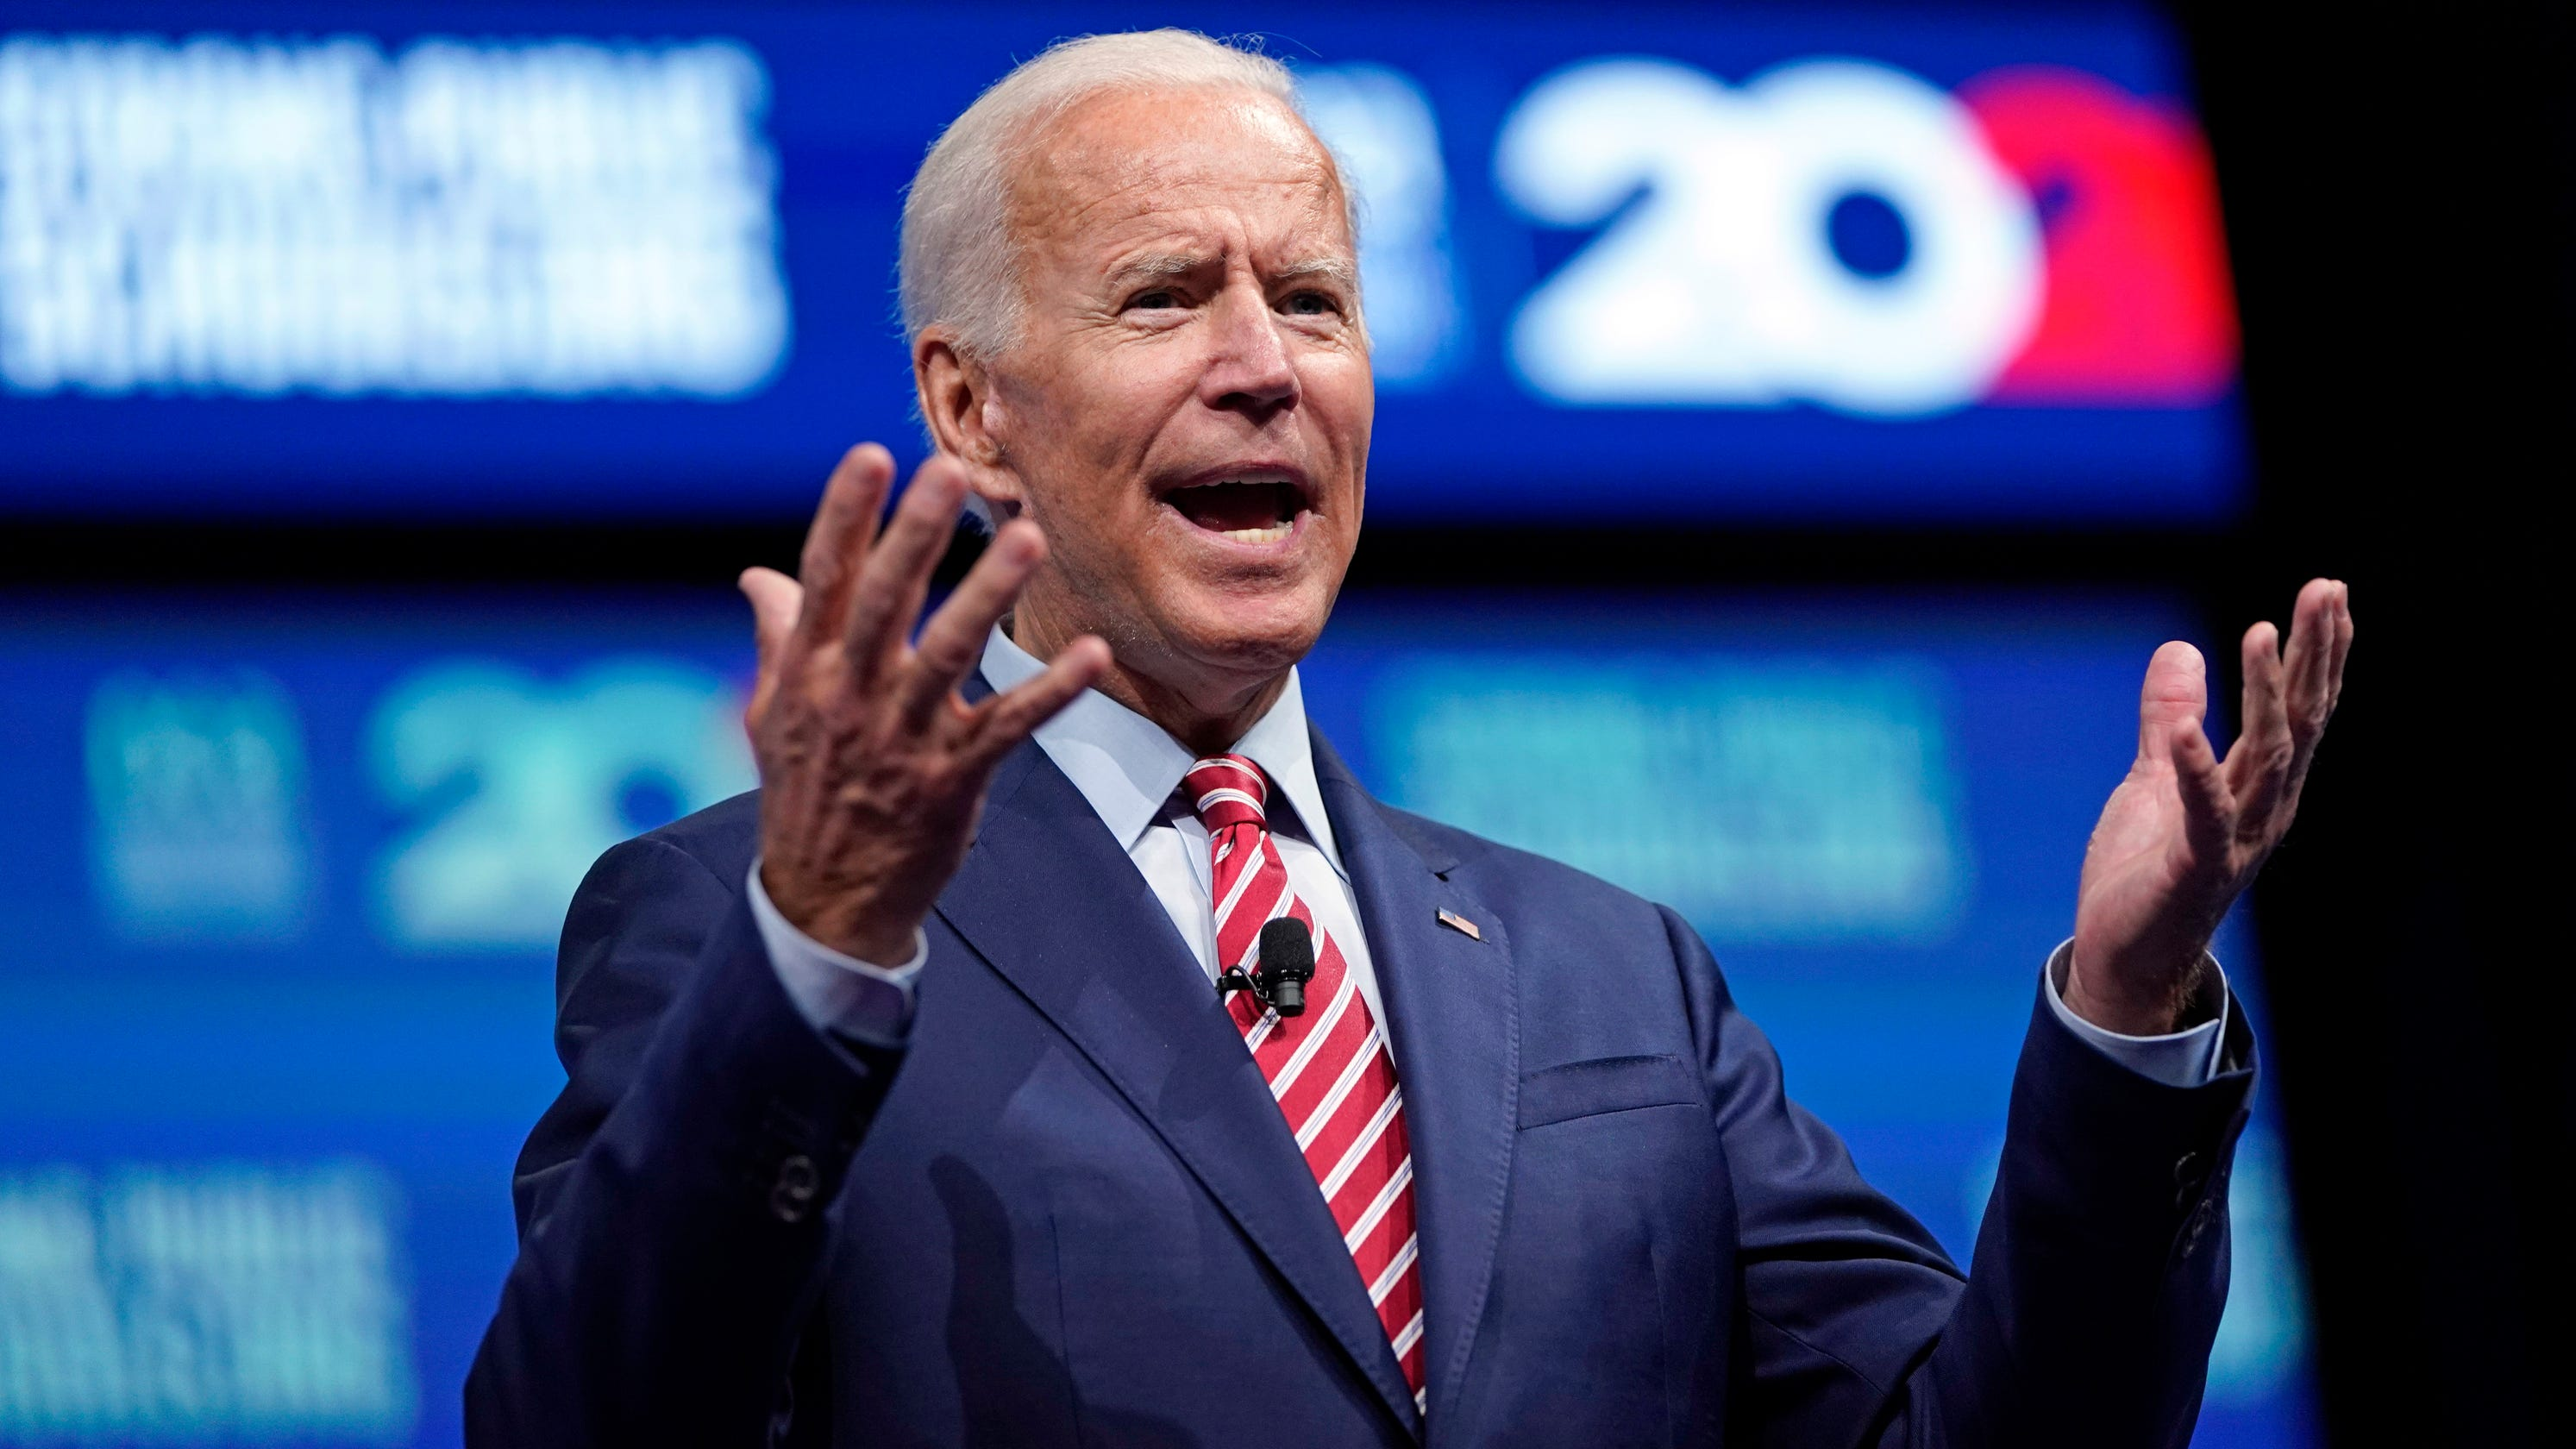 Biden apologizes for comments about segregationists